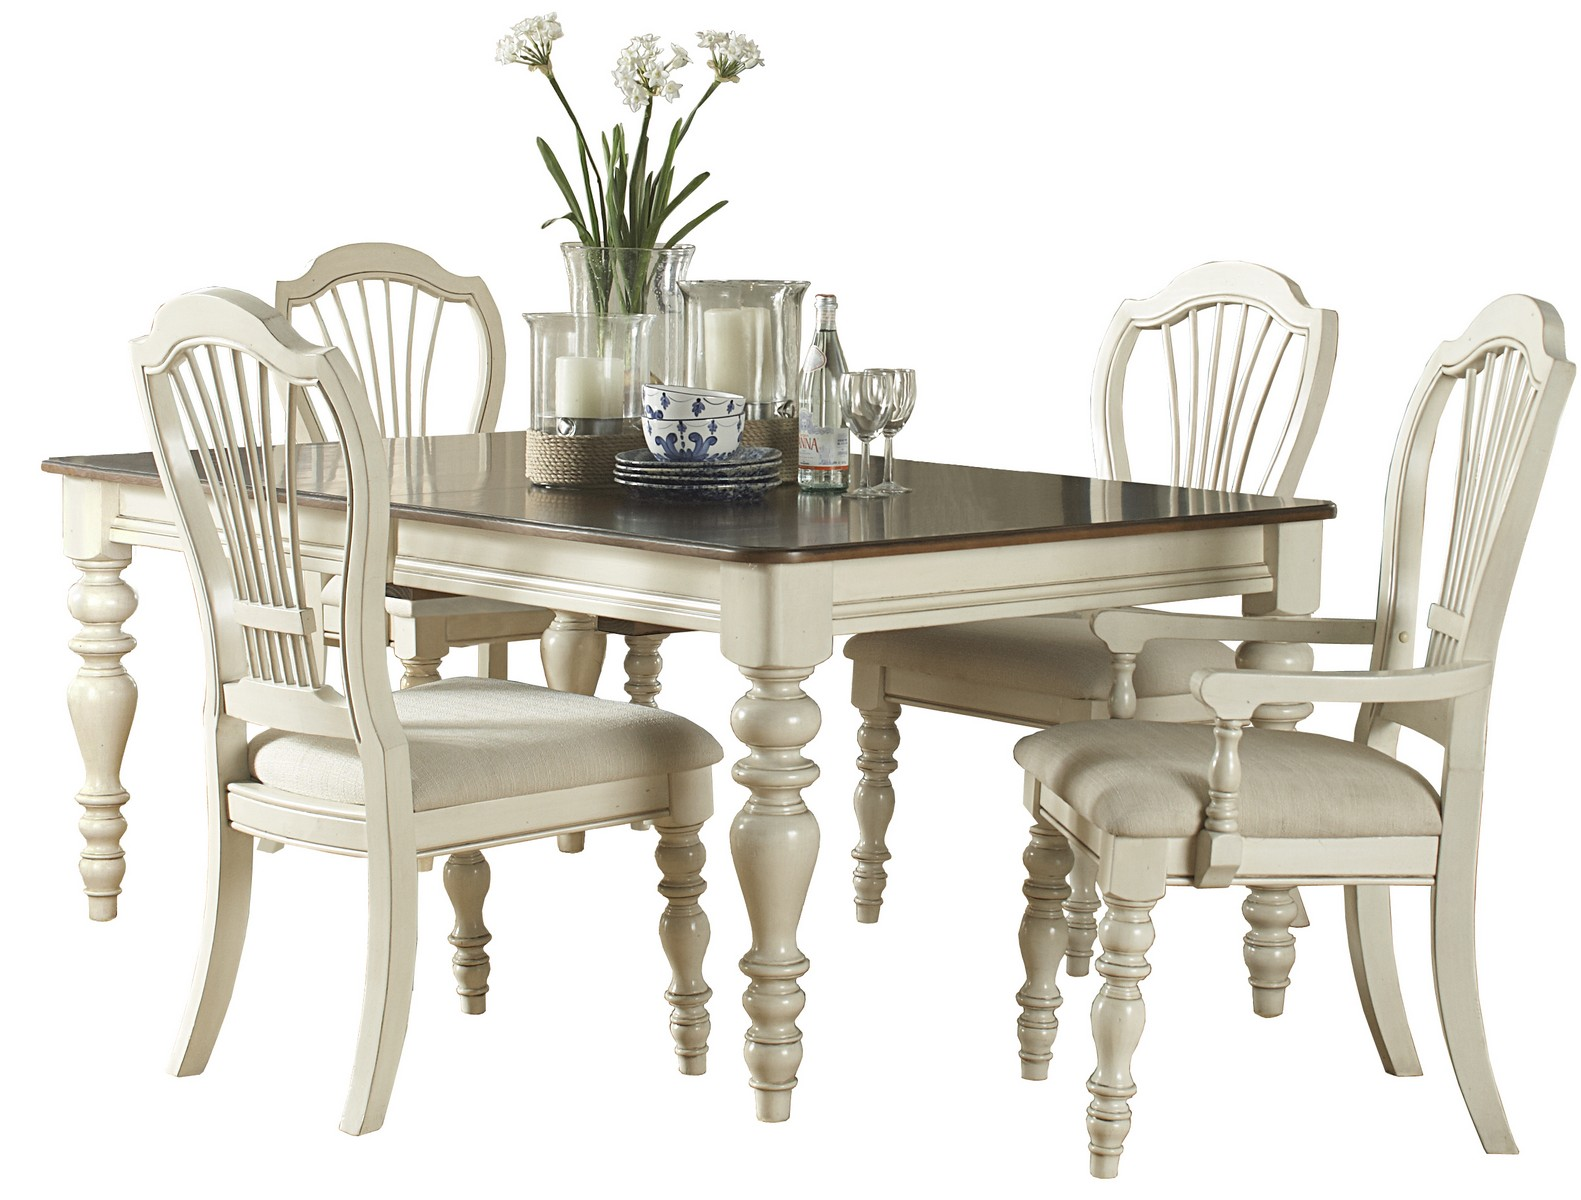 Hillsdale Pine Island 5 PC Dining Set with Wheat Back Chairs - Old White